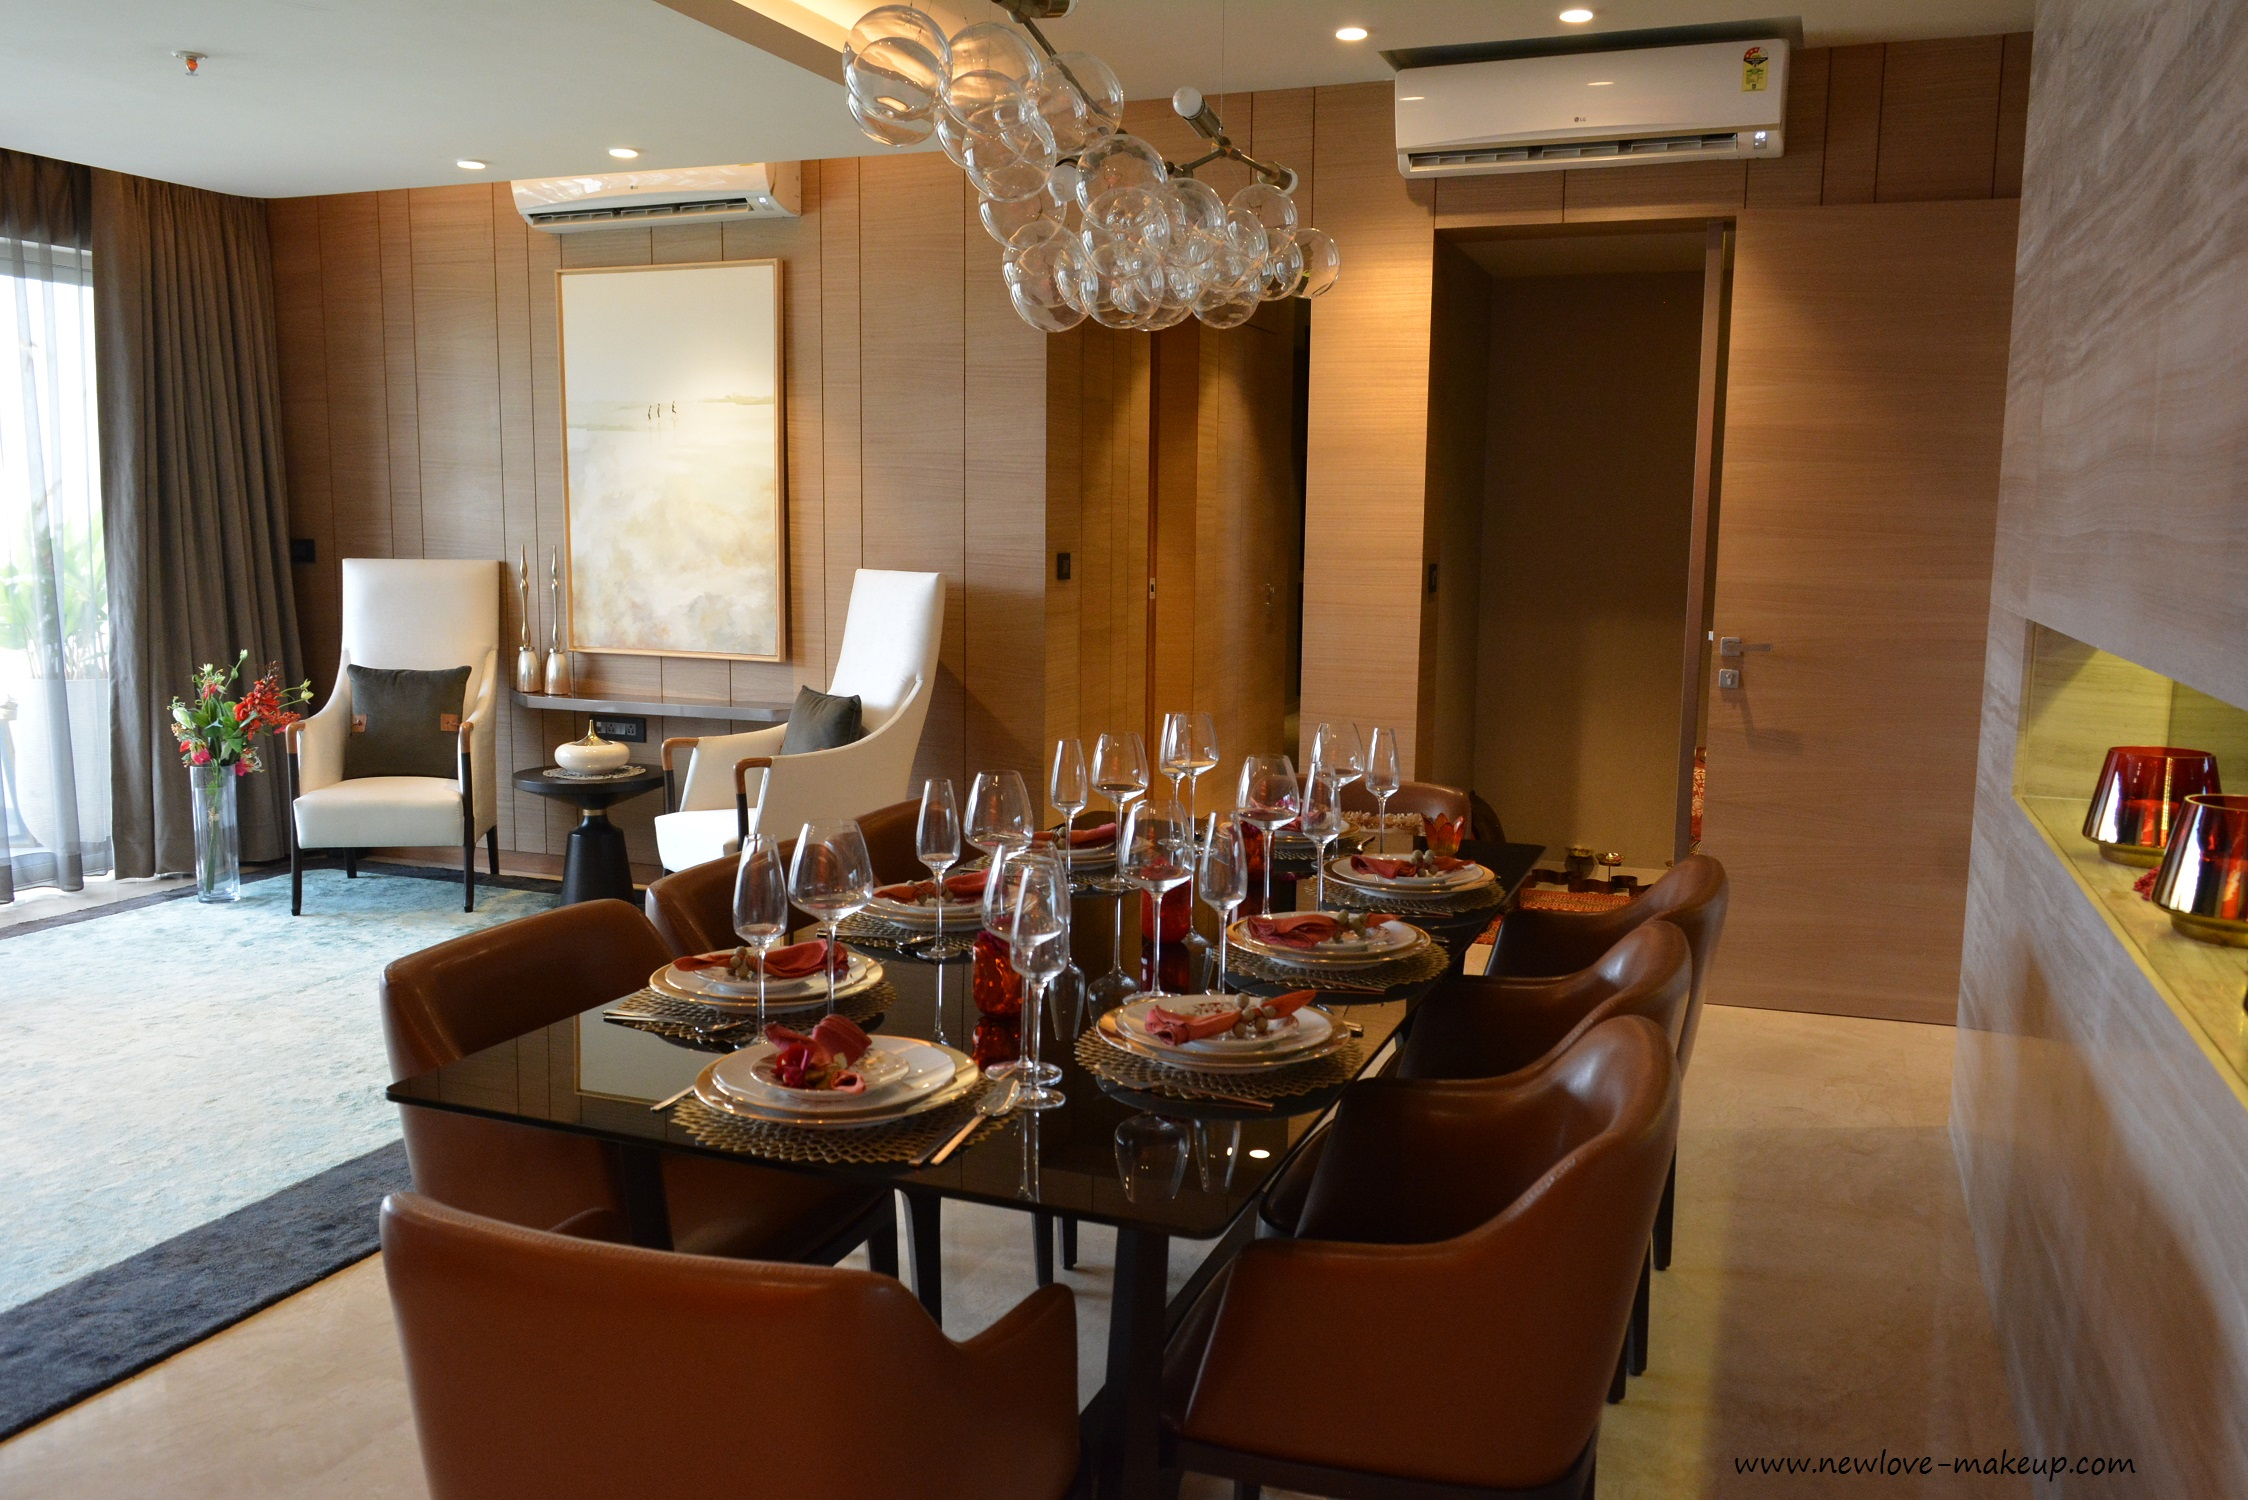 Lodha Belmondo - The Perfect Luxury Weekend Home